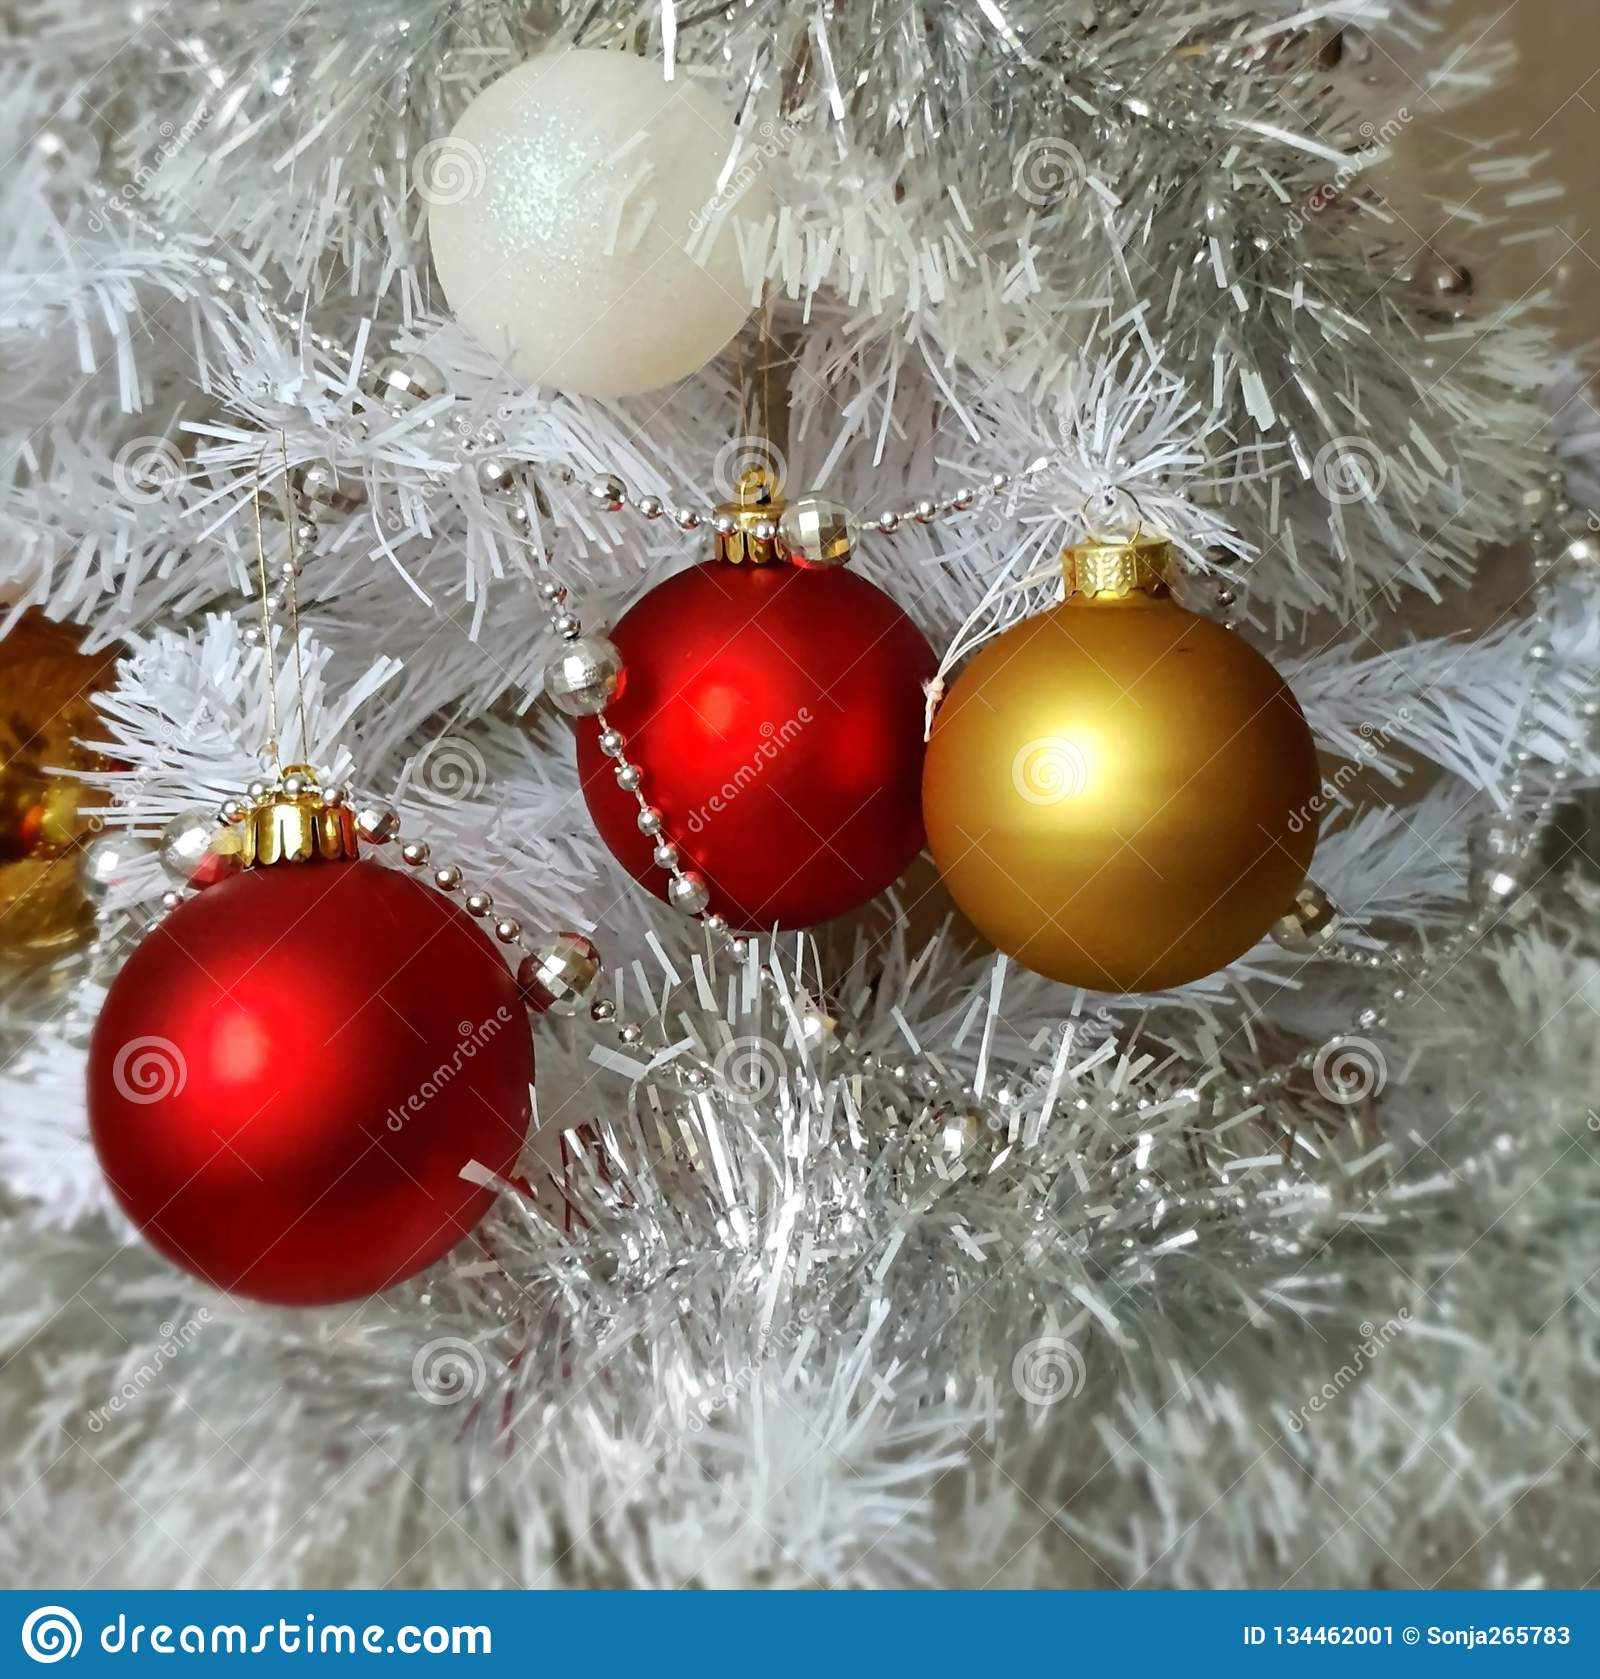 White Christmas Tree Gold Silver Red White Balls Silver Garland Christmas Light Decoration Illumination Ideas Stock Image Image Of Elements Gift 134462001